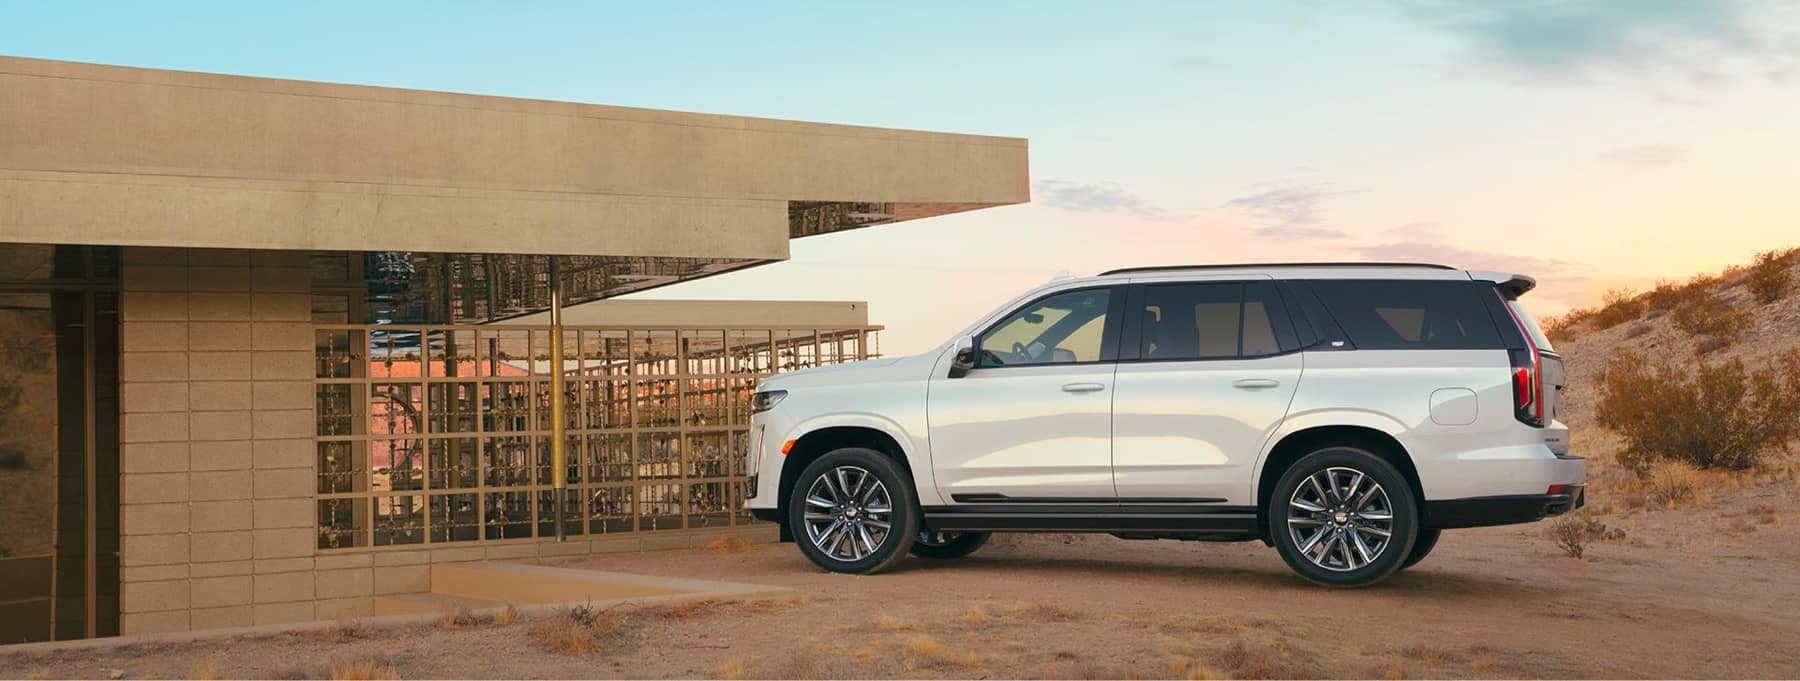 2021 escalade parked at modern building in desert